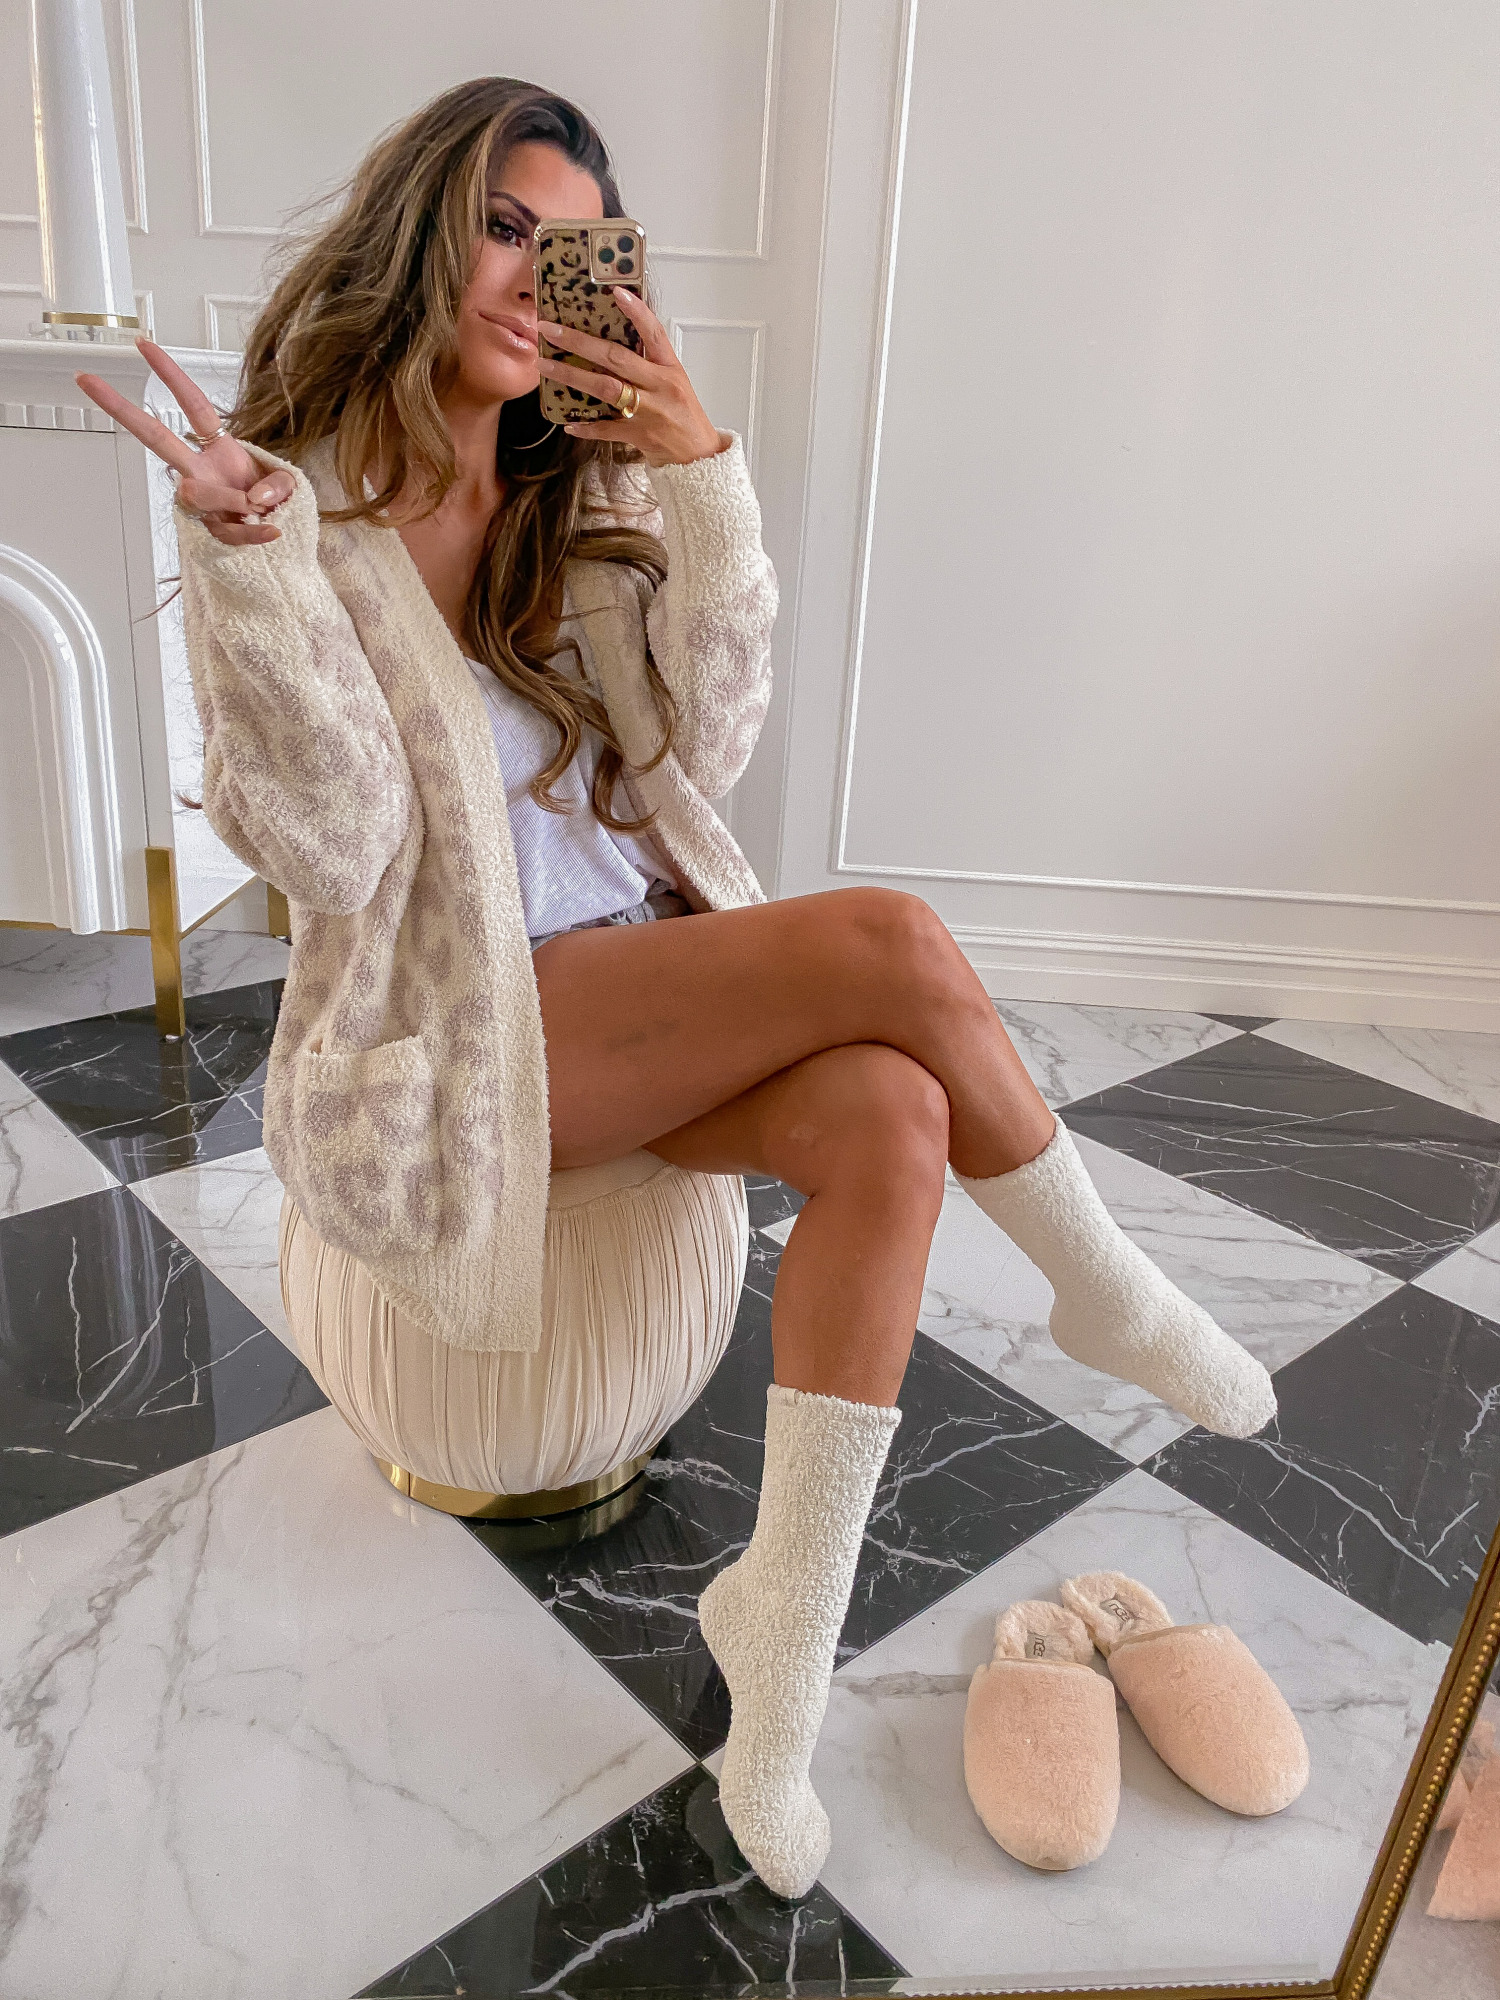 https://www.thesweetestthingblog.com/app/uploads/2021/07/Nsale-2021-must-haves-Nordstrom-Anniversary-Sale-2021-picks-emily-gemma-Nordstrom-sale-Barefoot-dreams-cardigan-socks-What-to-buy-NSALE-2021 |  Nordstrom Anniversary Sale by popular US fashion blog, The Sweetest Thing: image of Emily Gemma wearing a pair of Barefoot Dreams socks and a Barefoot Dreams sweater while sitting on a tan tuft ottoman.